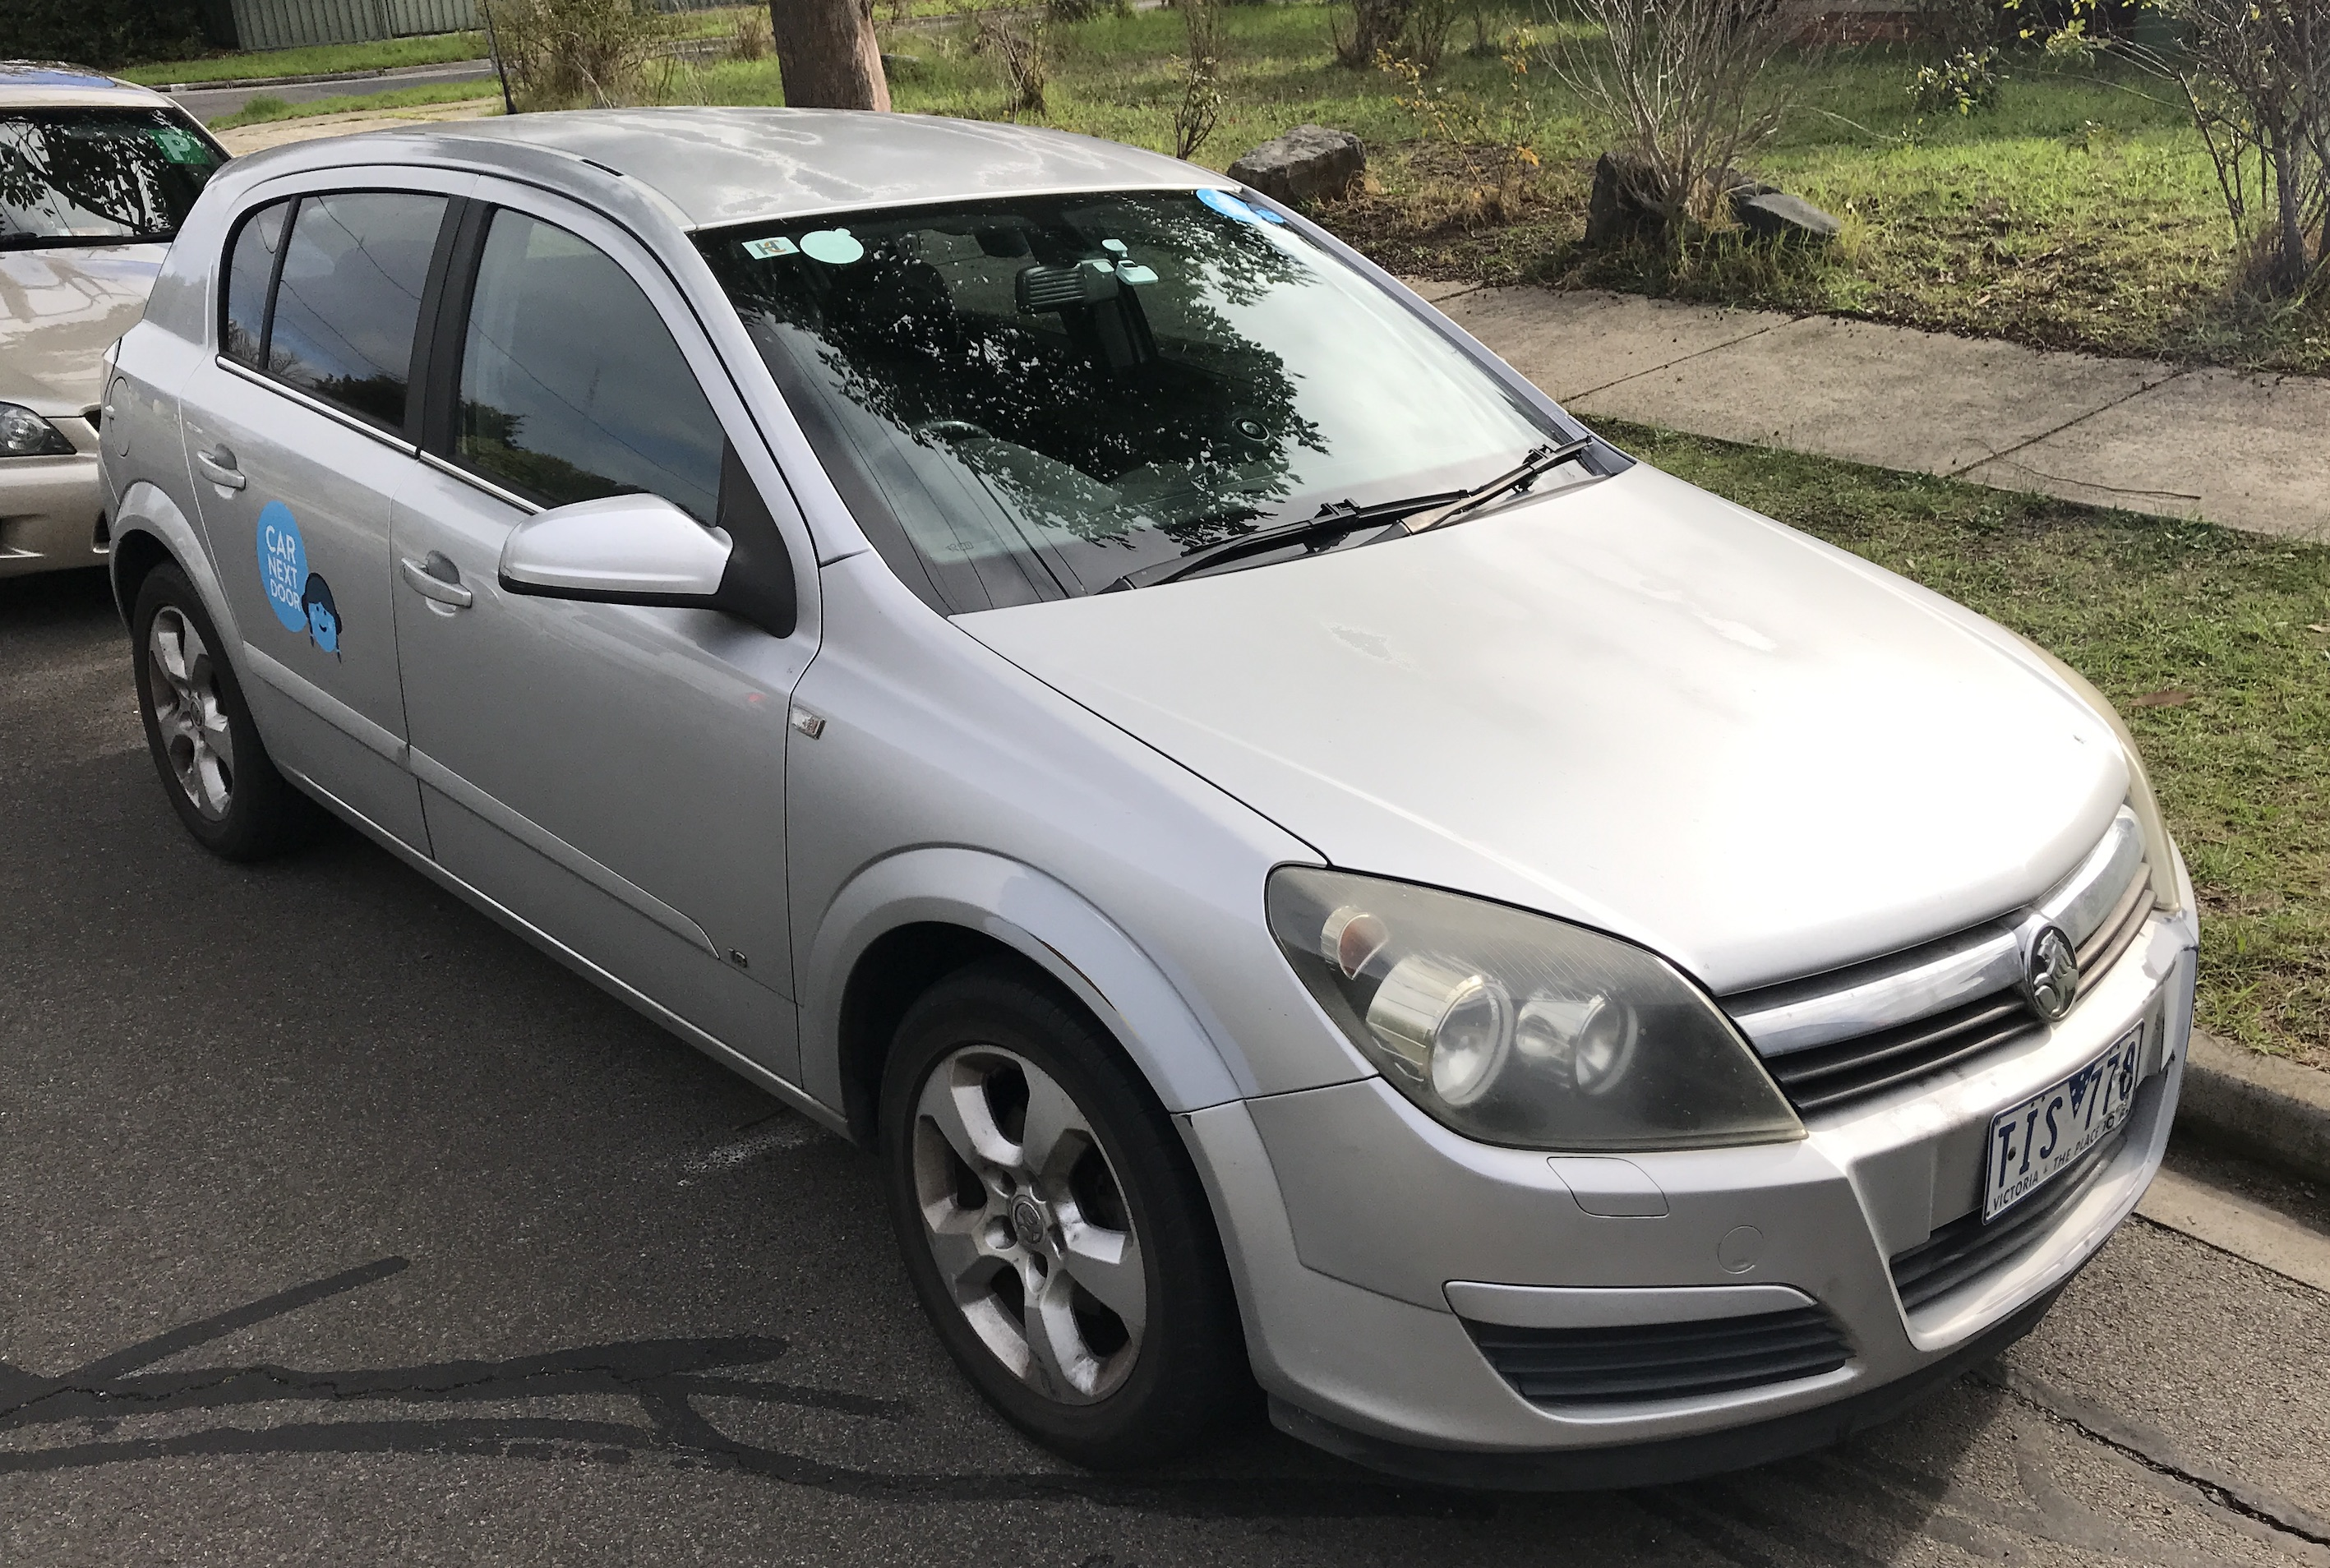 Picture of Jason's 2005 Holden Astra